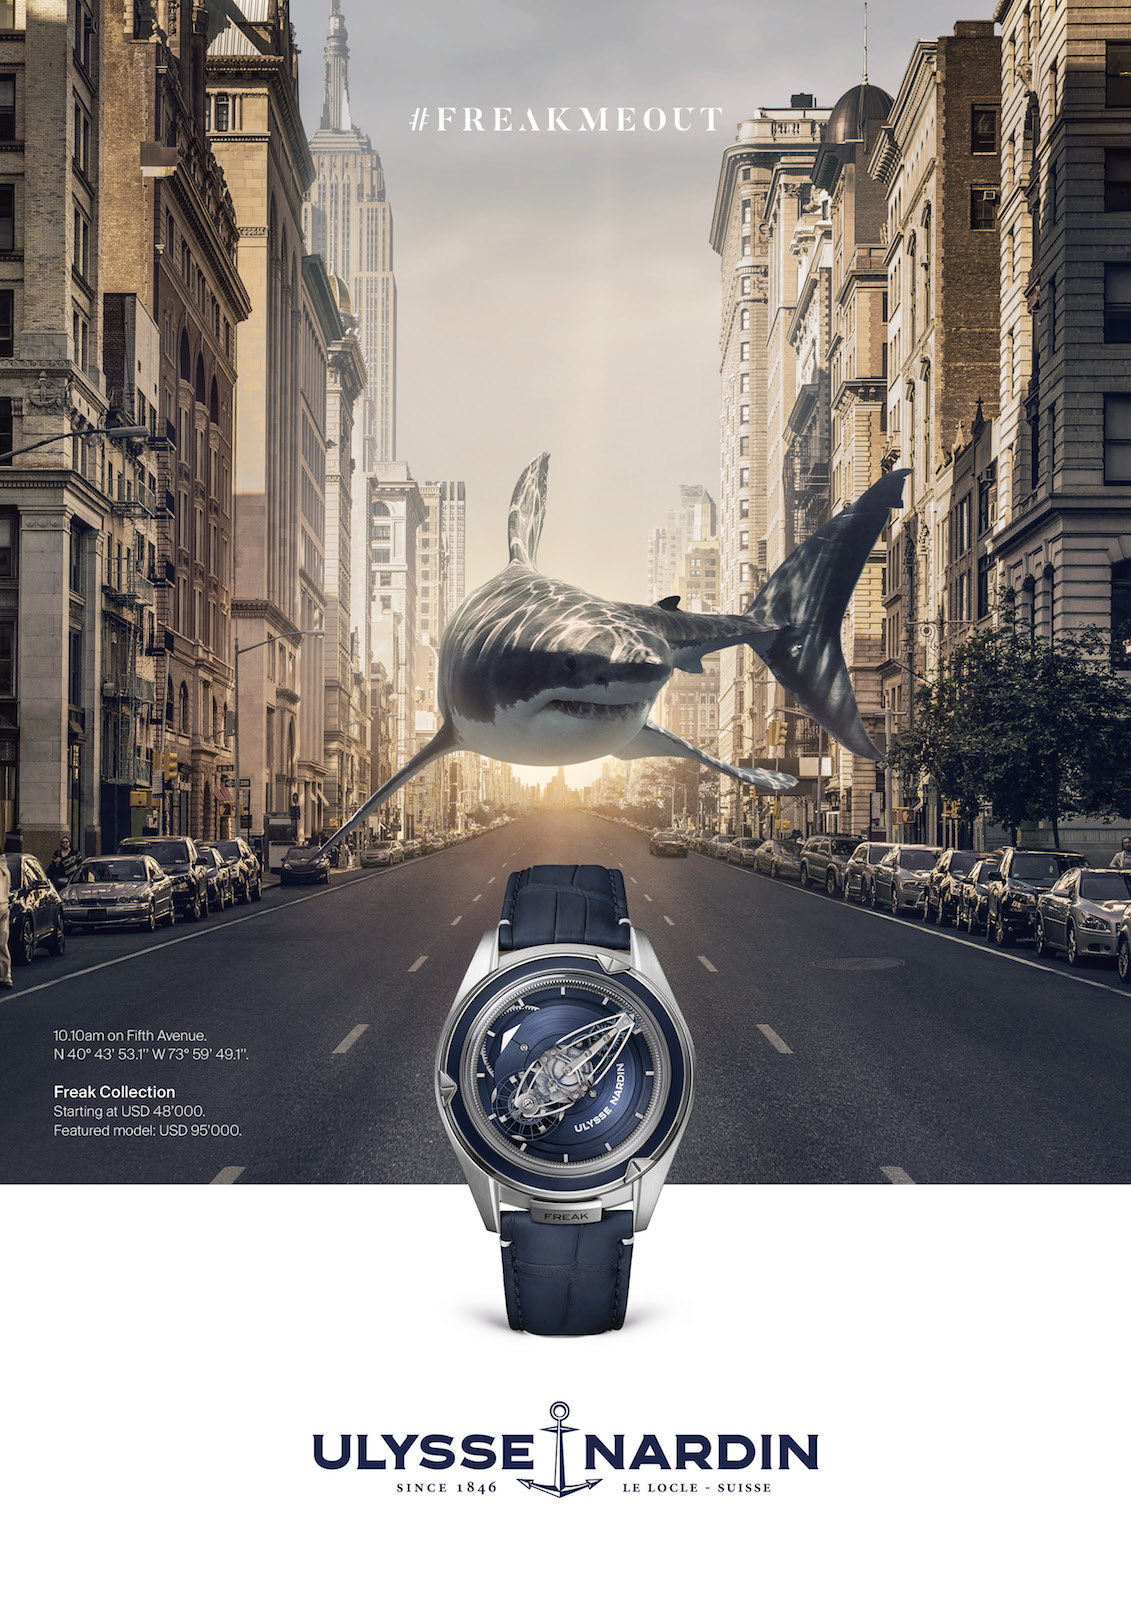 Ulysse Nardin FREAKMEOUT - visual 1